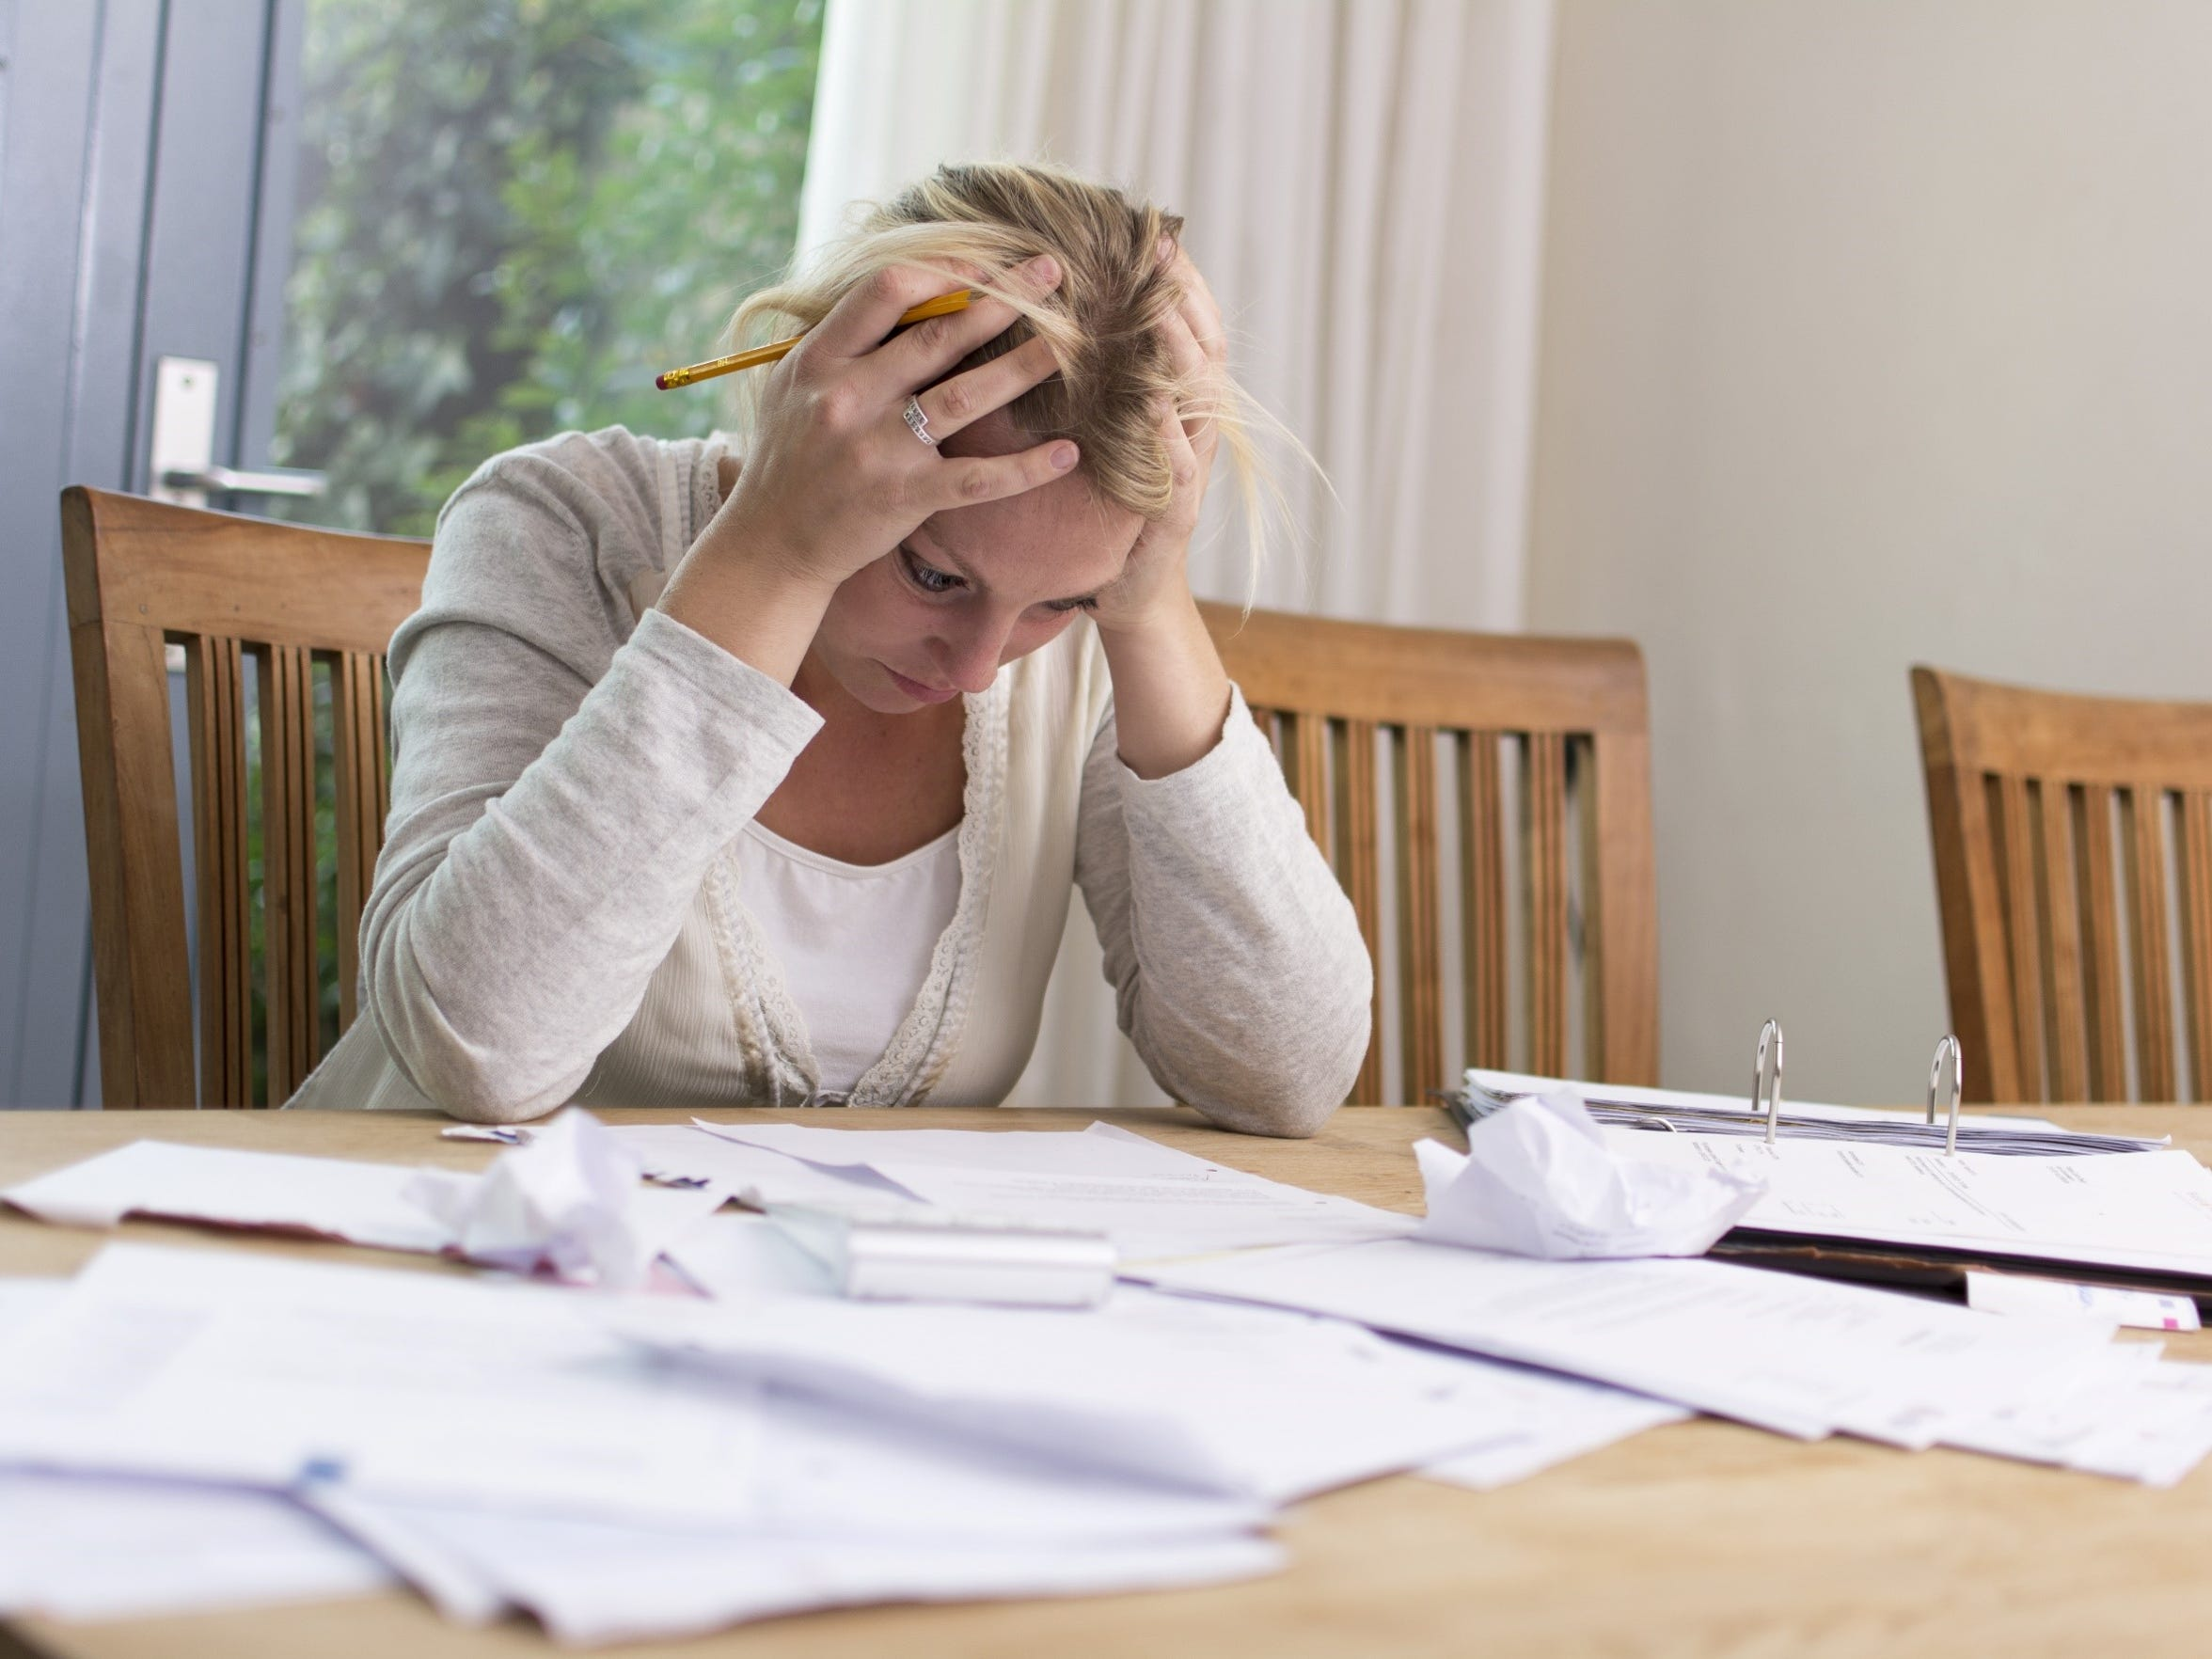 Paying bills can be messy and time-consuming the old-fashioned way.